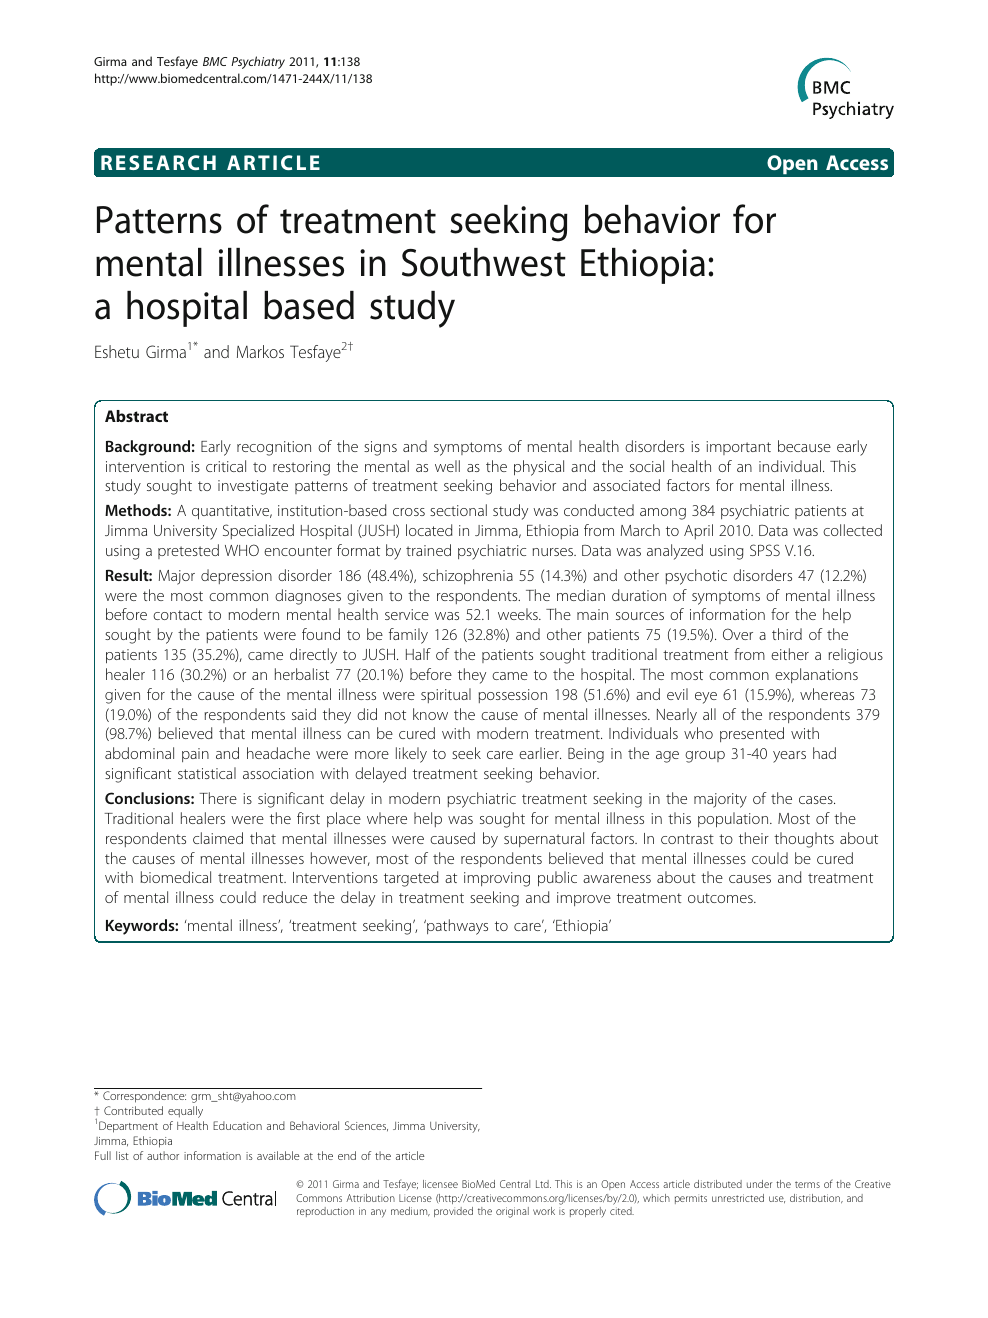 Patterns of treatment seeking behavior for mental illnesses in